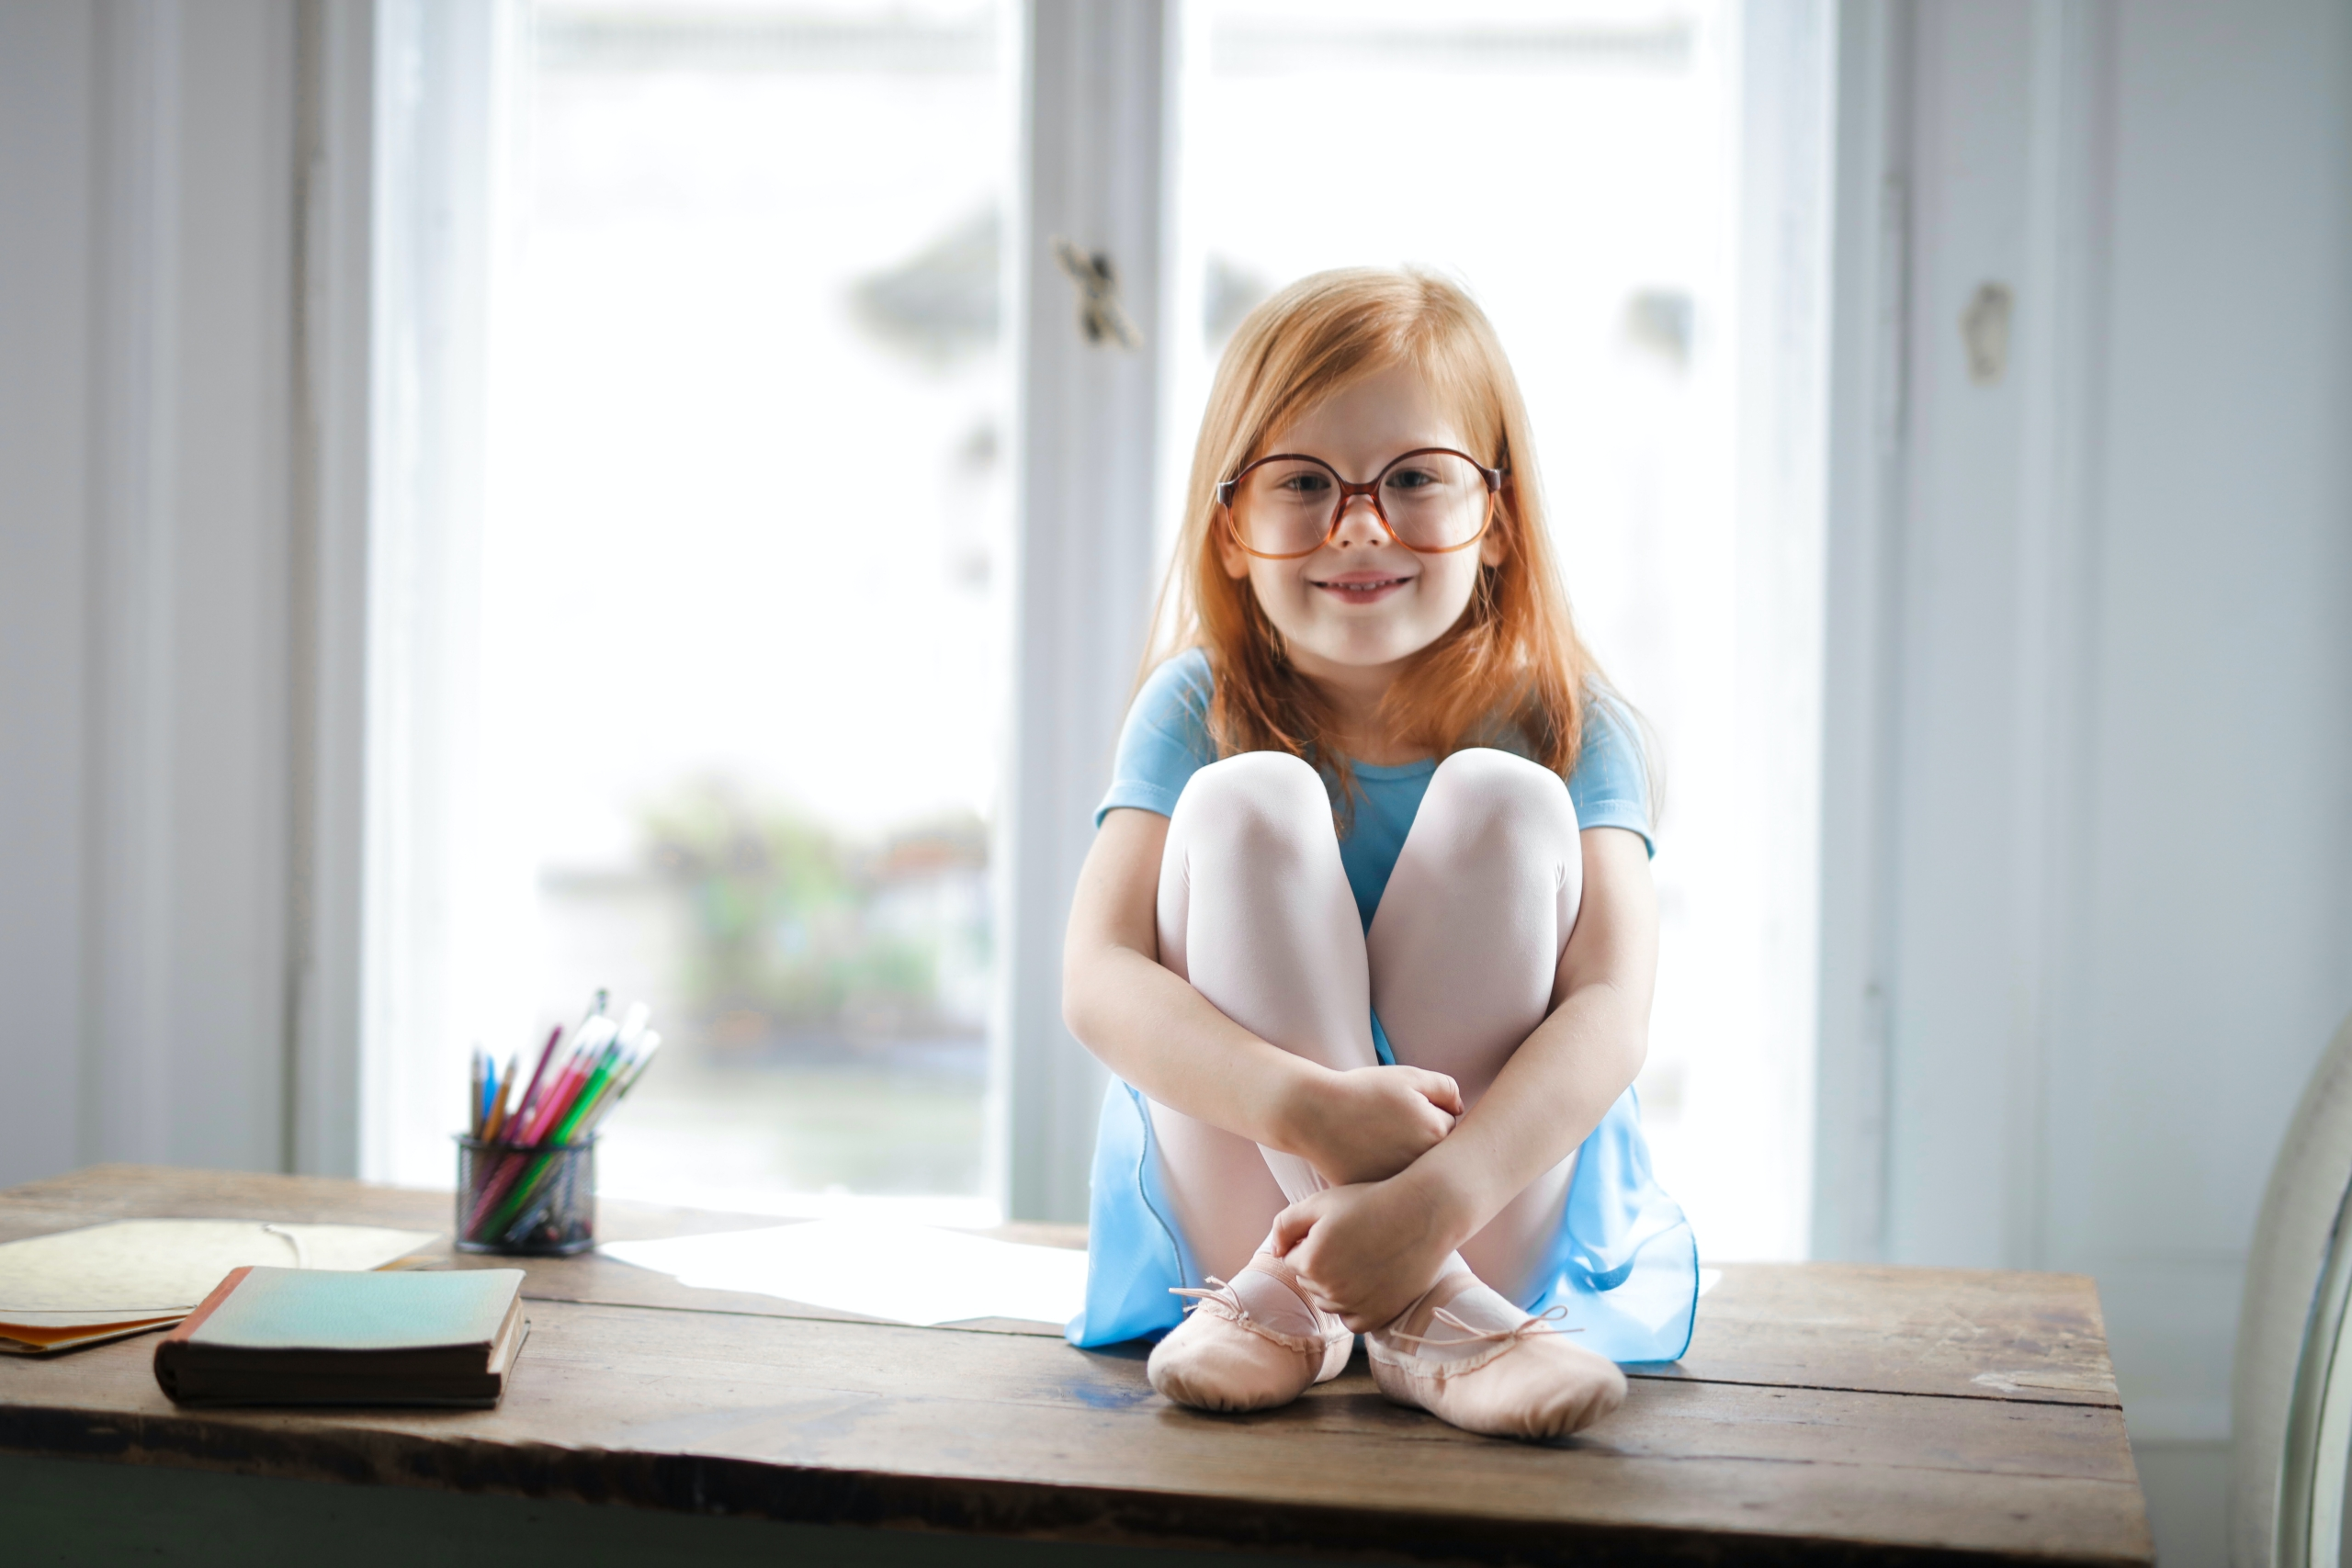 Girl Sitting on Table